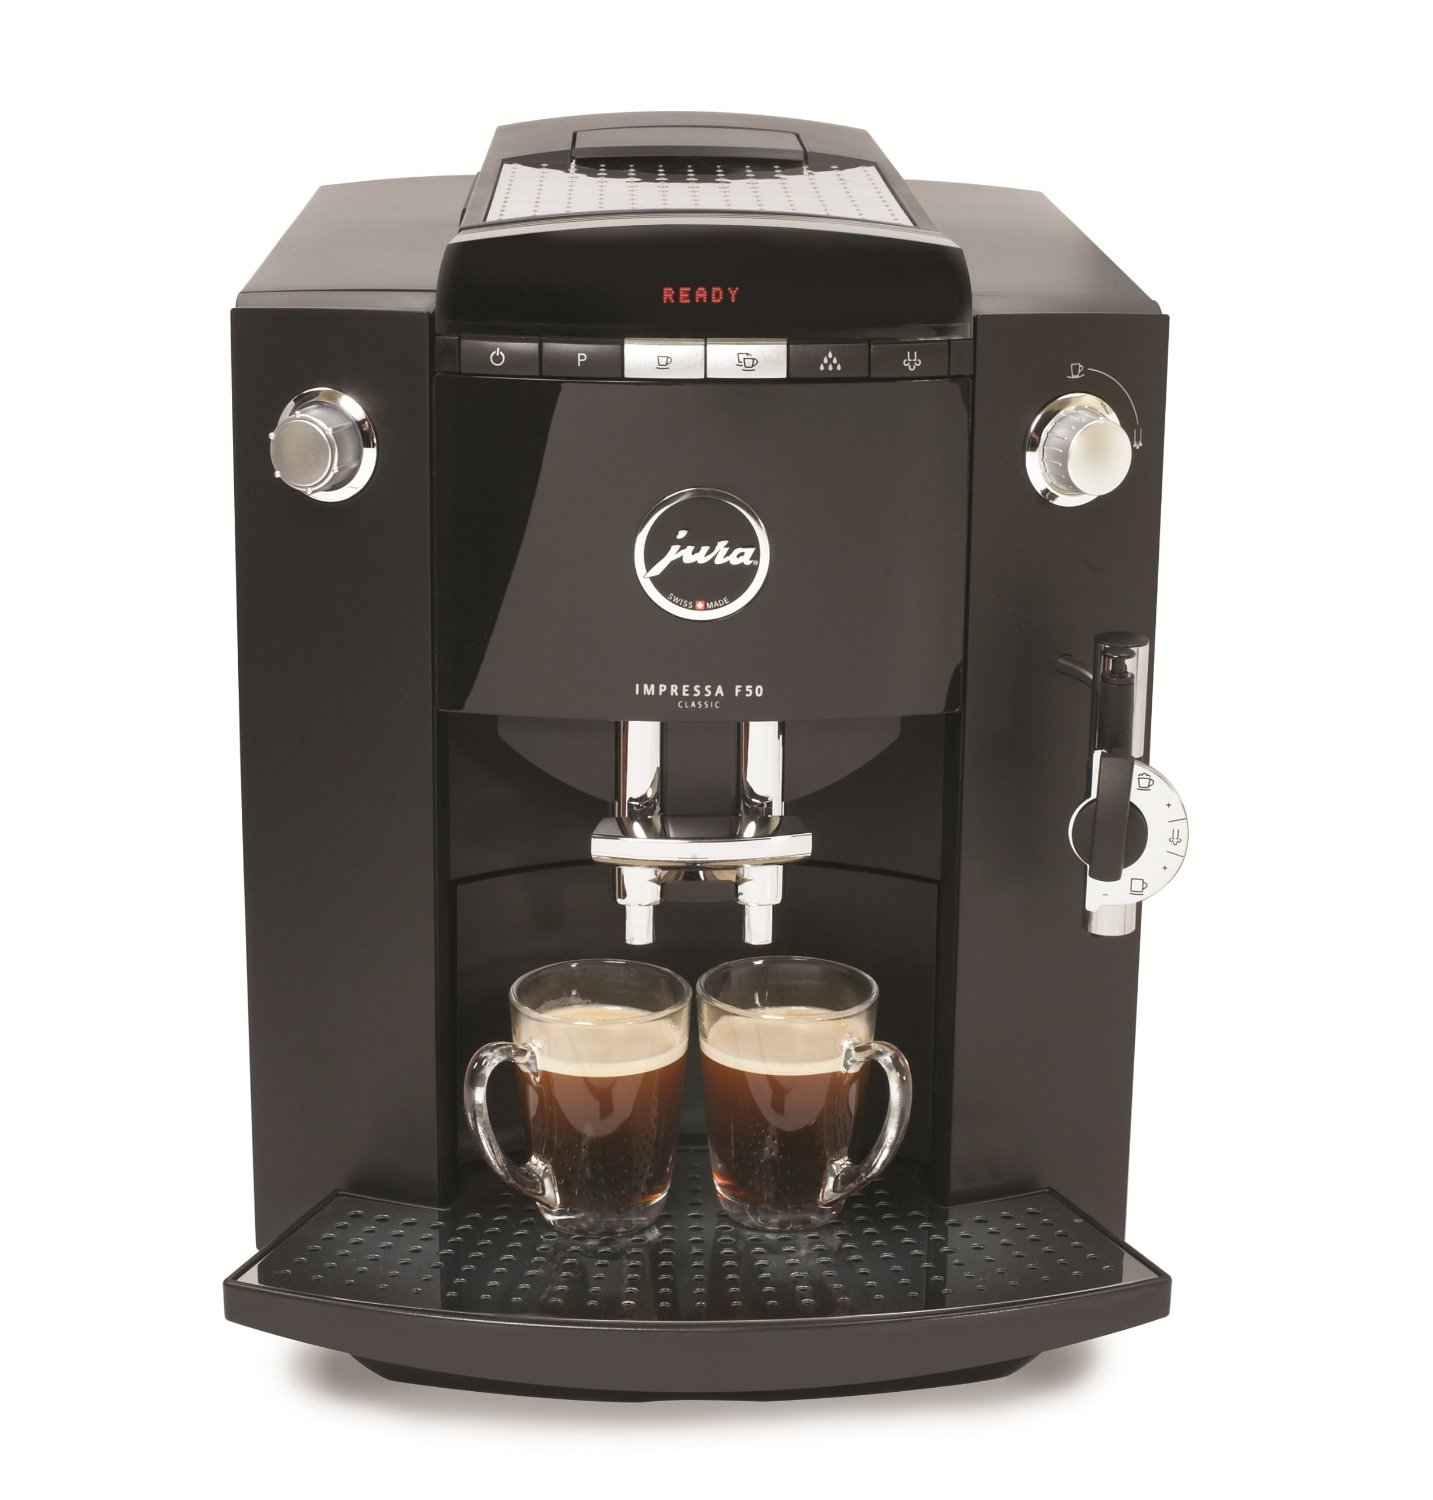 jura superautomatic espresso machine reviews coffee on fleek. Black Bedroom Furniture Sets. Home Design Ideas